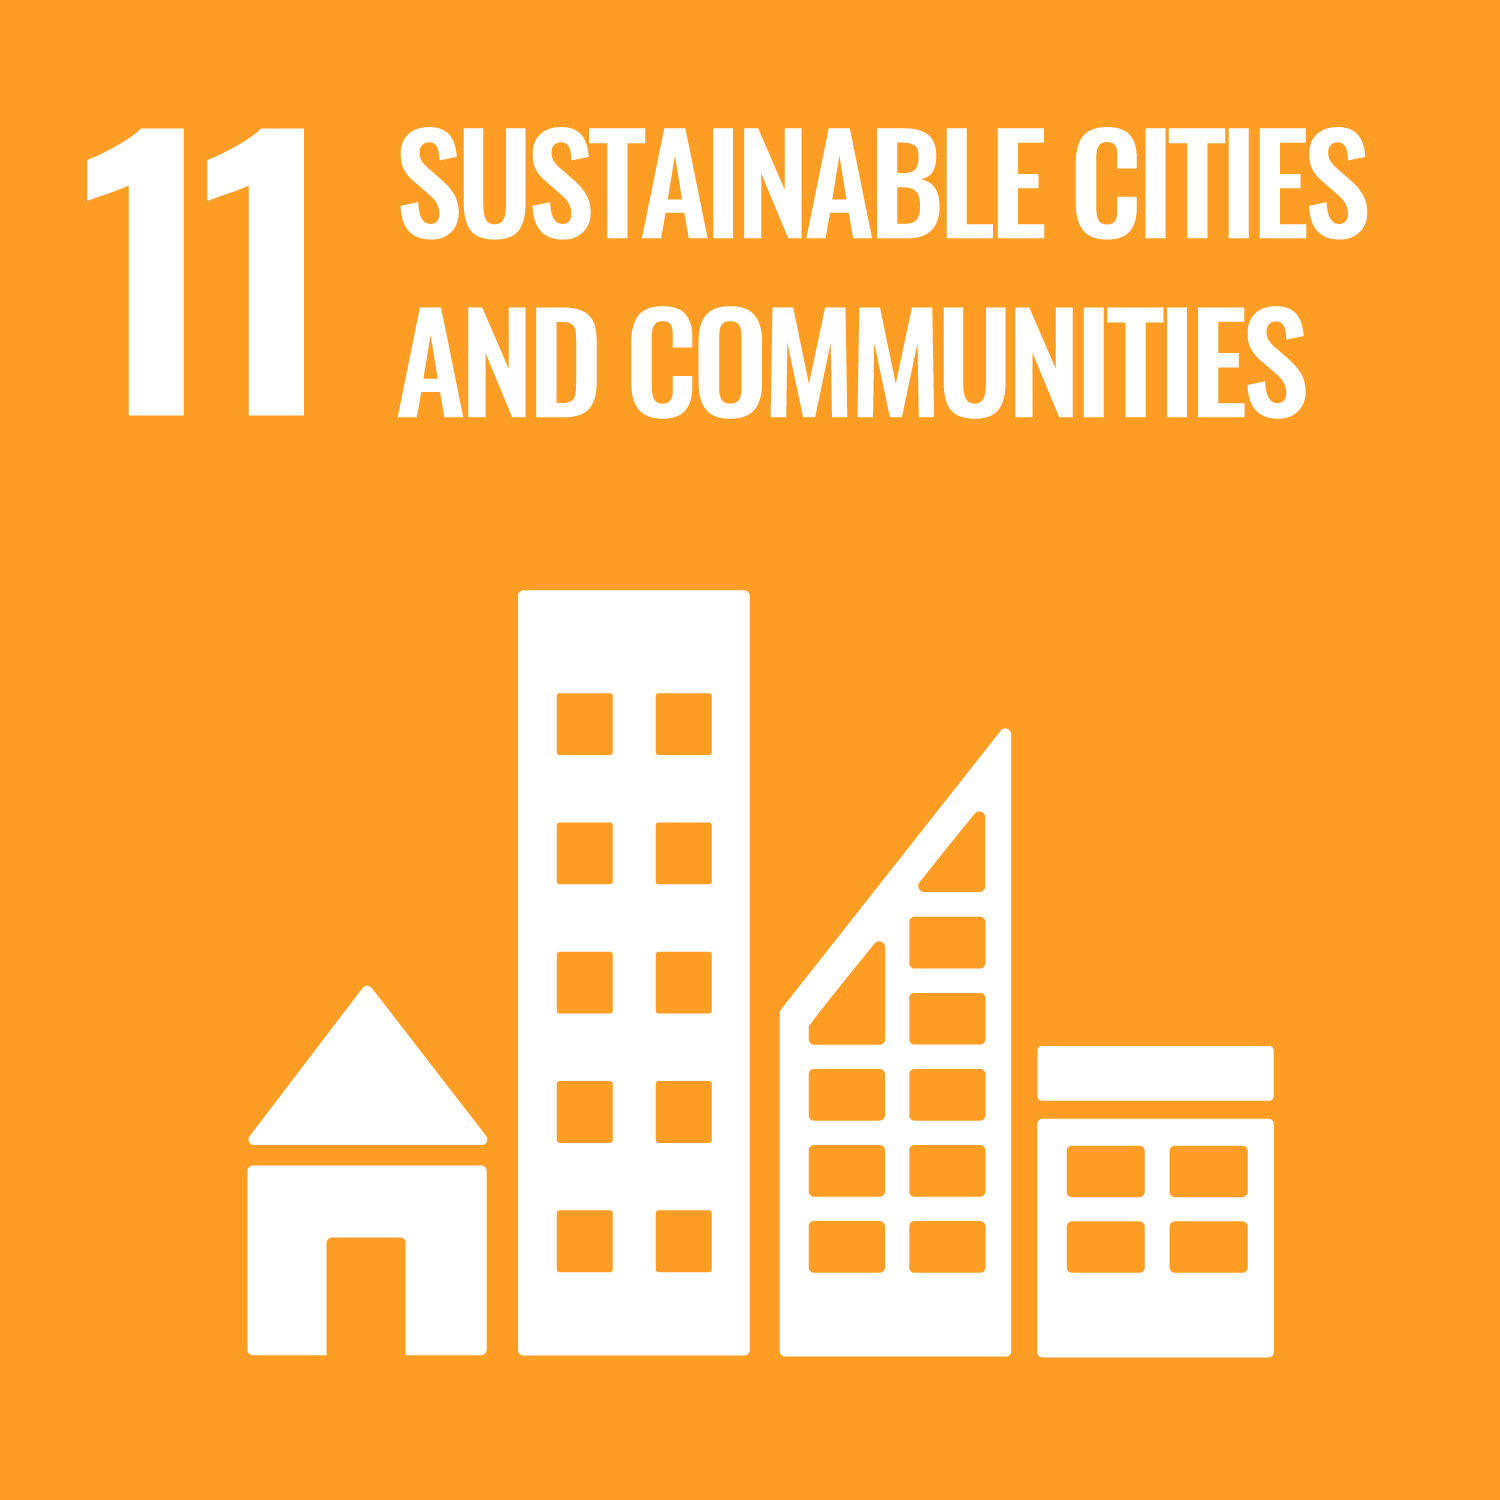 Sustainable Development Goals – Sustainable Cities and Communities